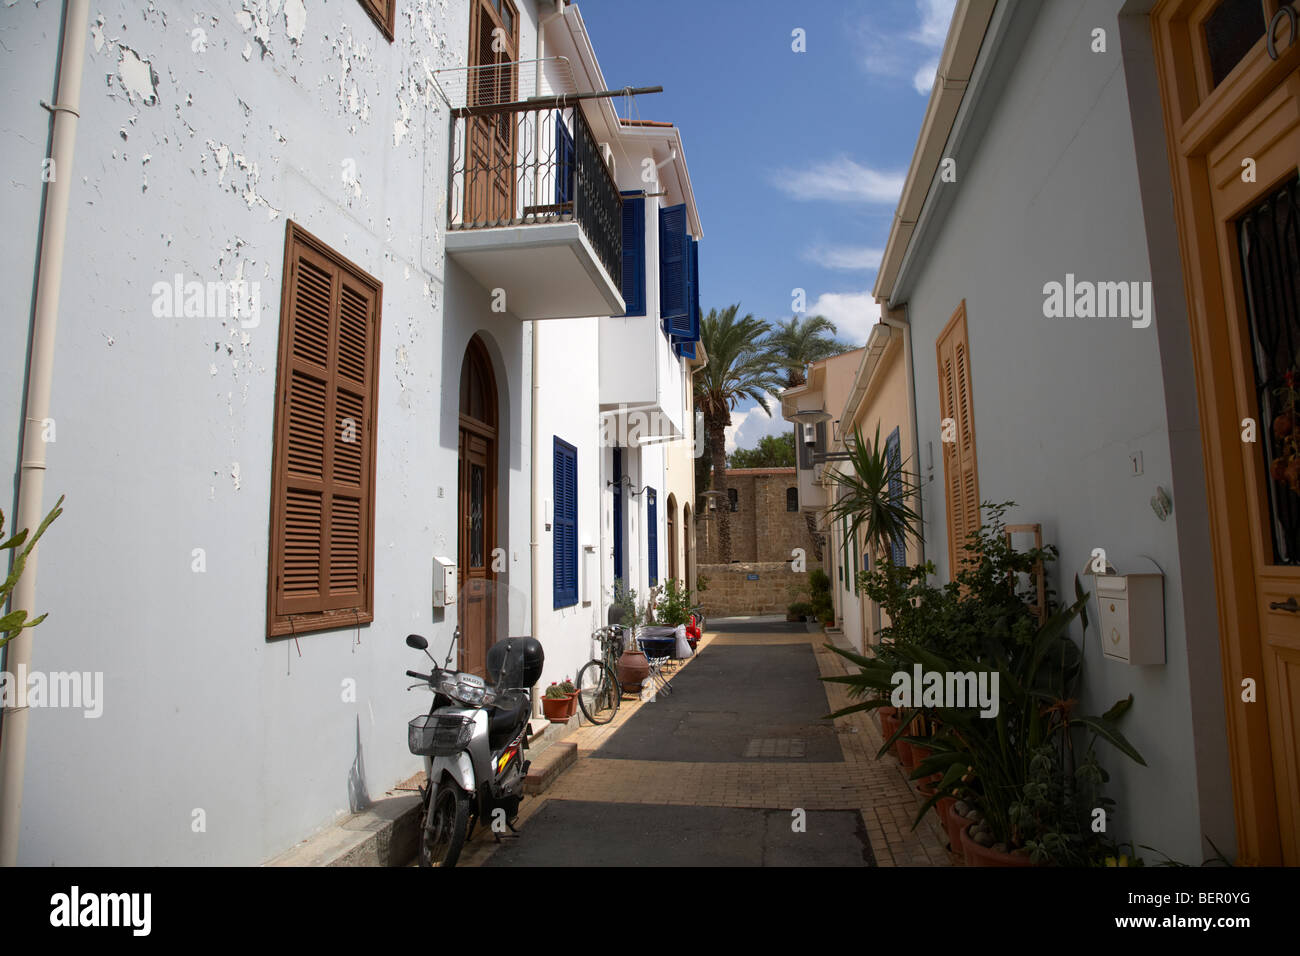 refurbished narrow city streets in old town of nicosia lefkosia republic of cyprus - Stock Image